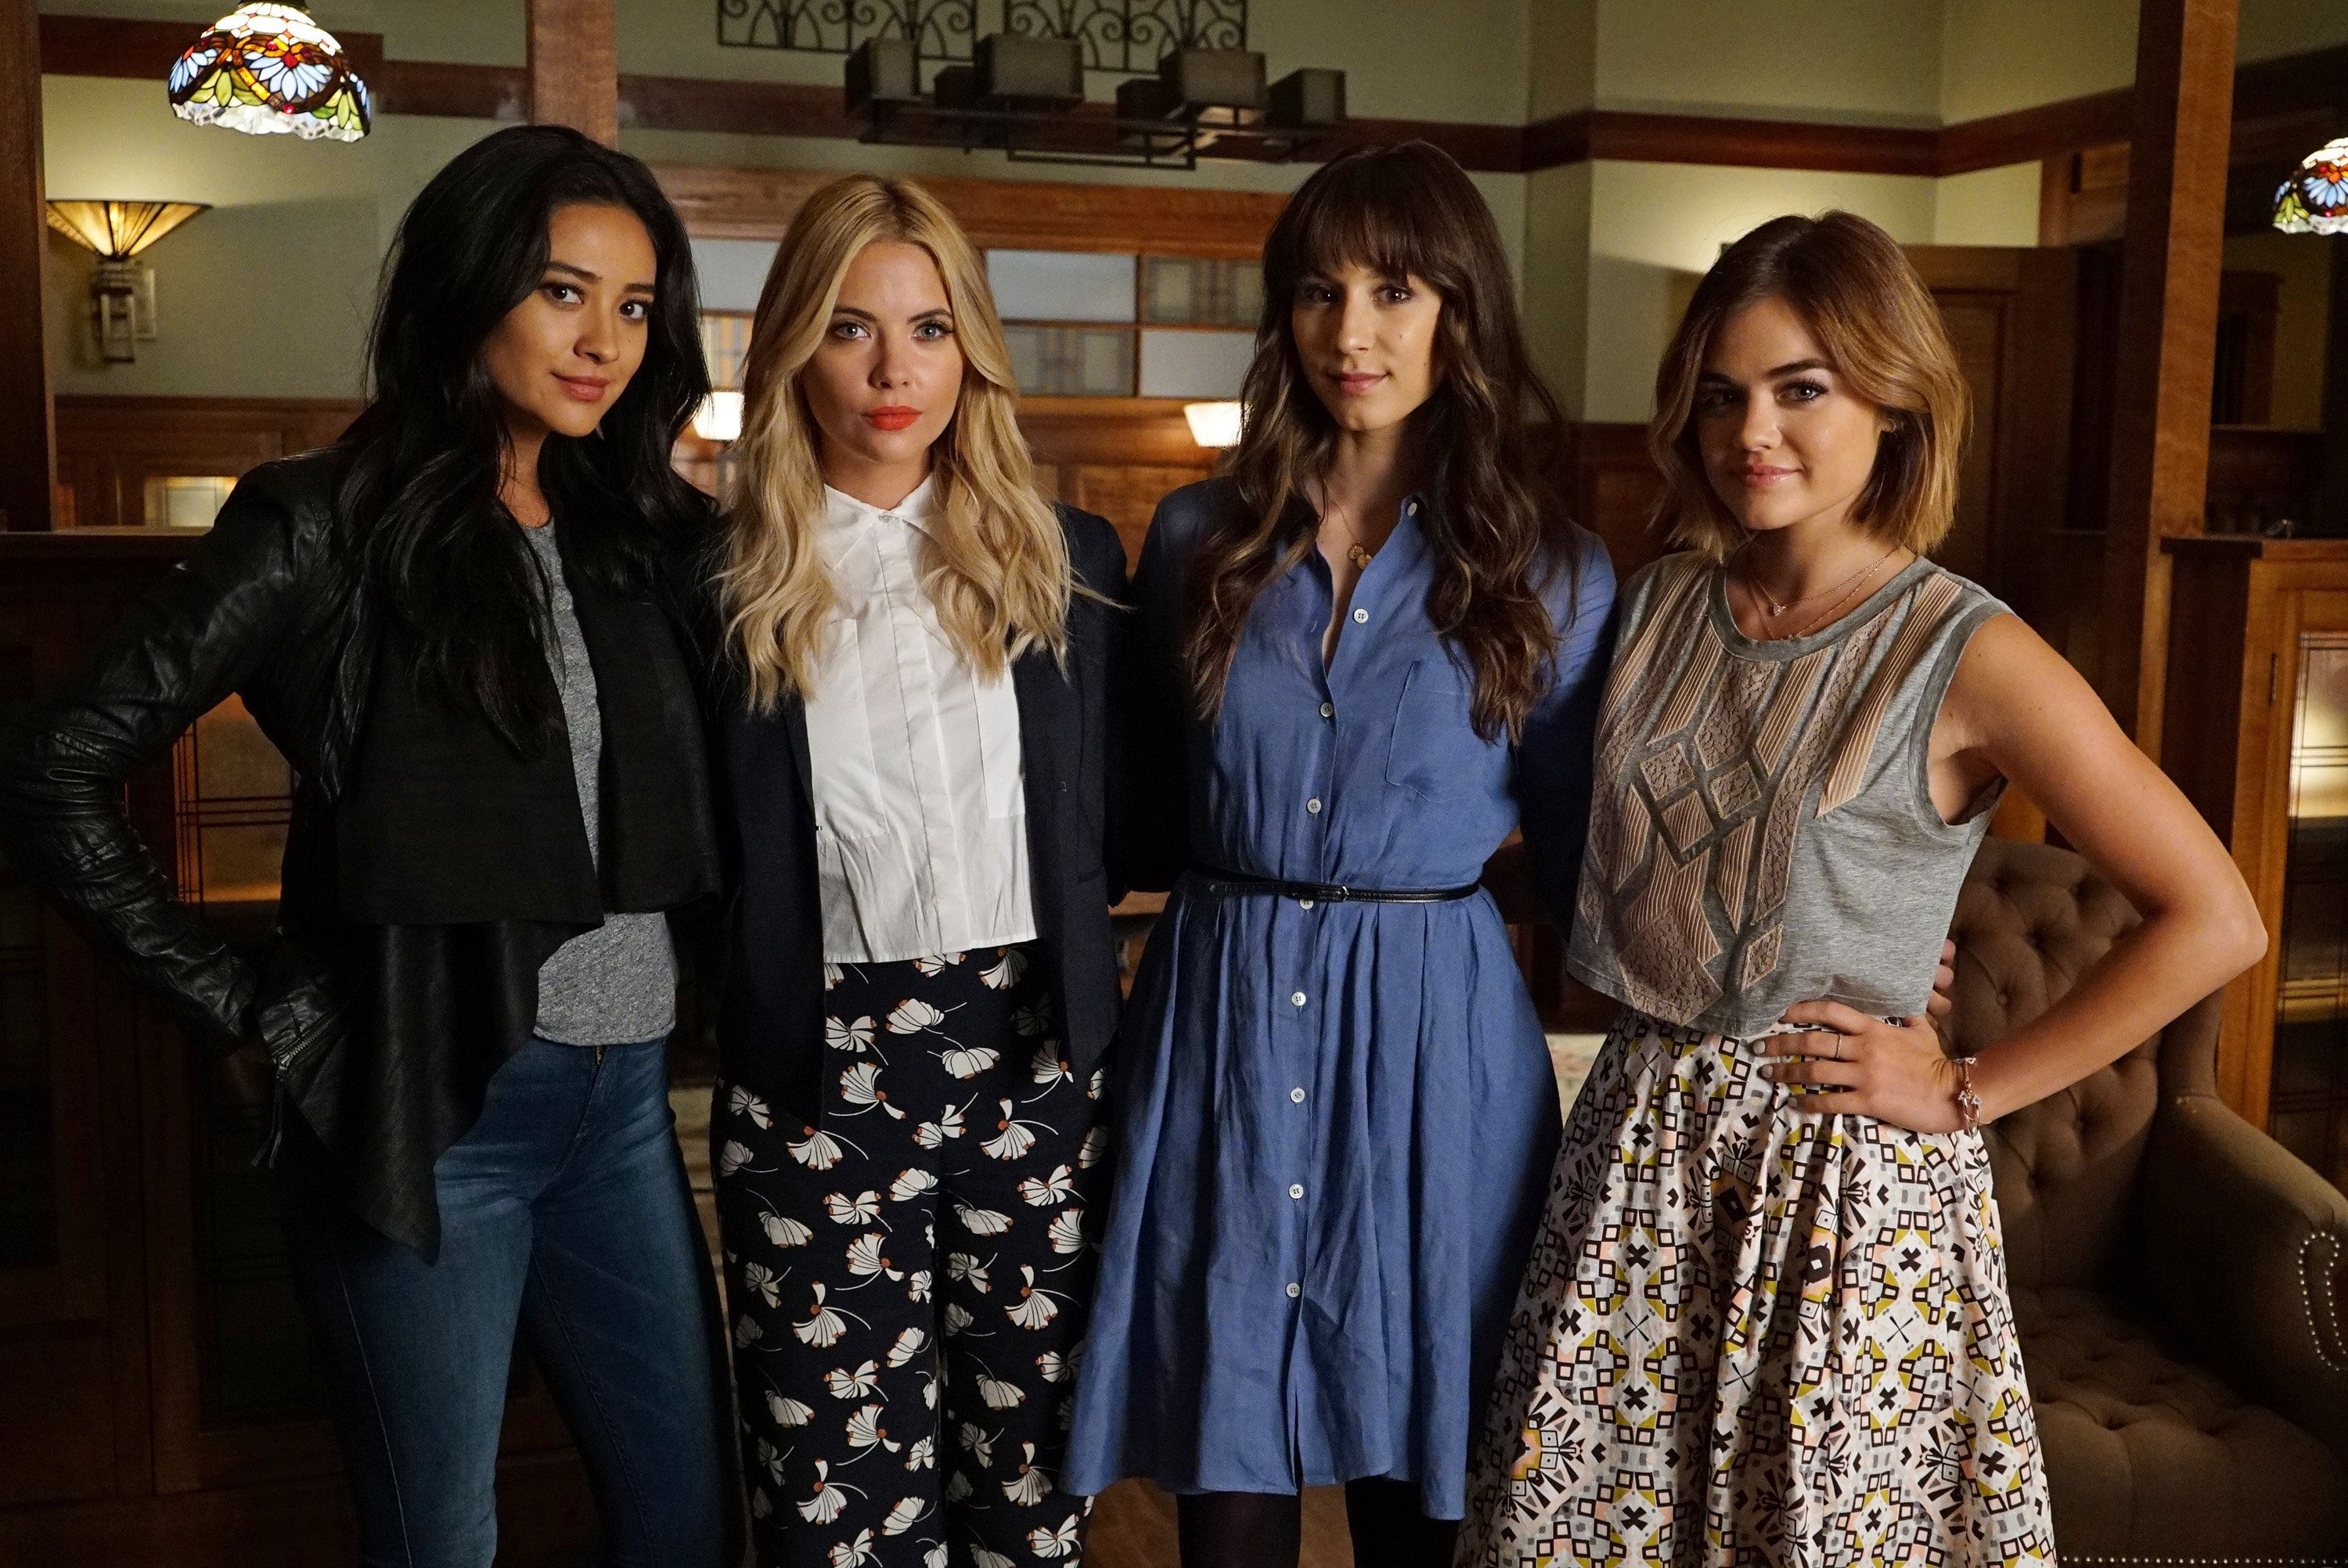 'Pretty Little Liars' Is Almost Over, But A Spinoff Could Be In The